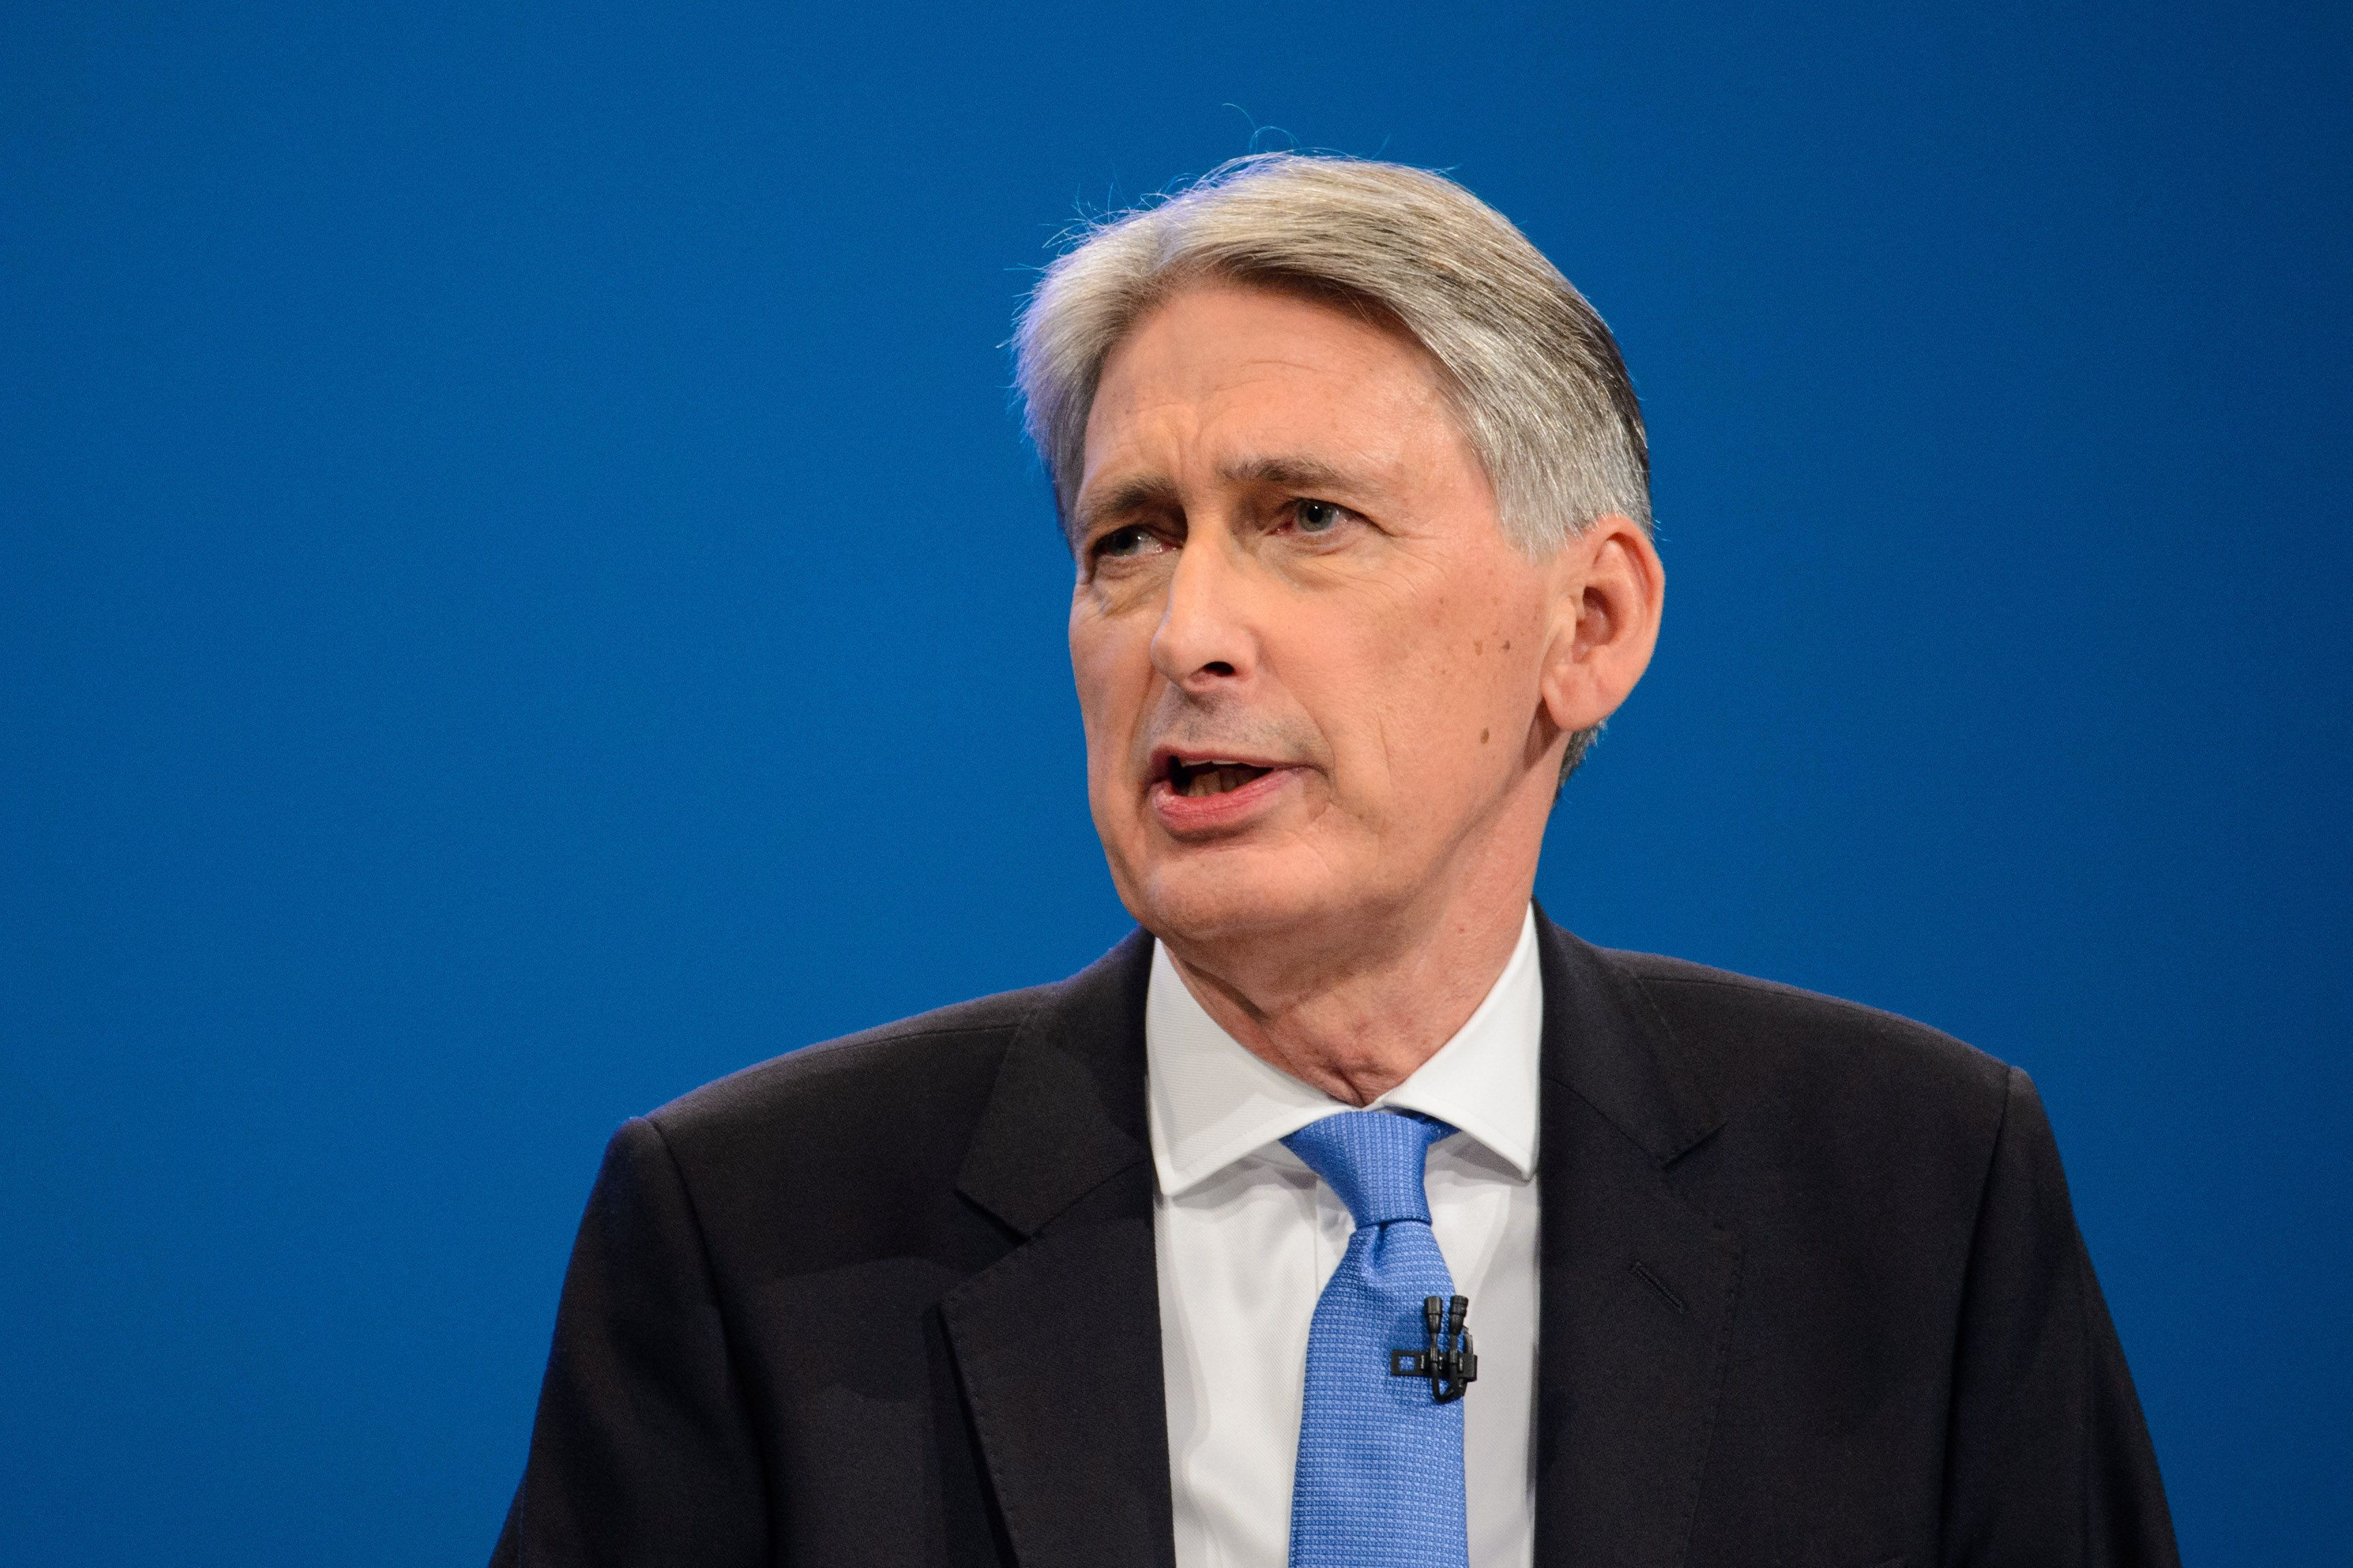 Theresa May Has 'Full Confidence' In Philip Hammond As Ex-Chancellor George Osborne Hints At Cabinet Talks To Oust